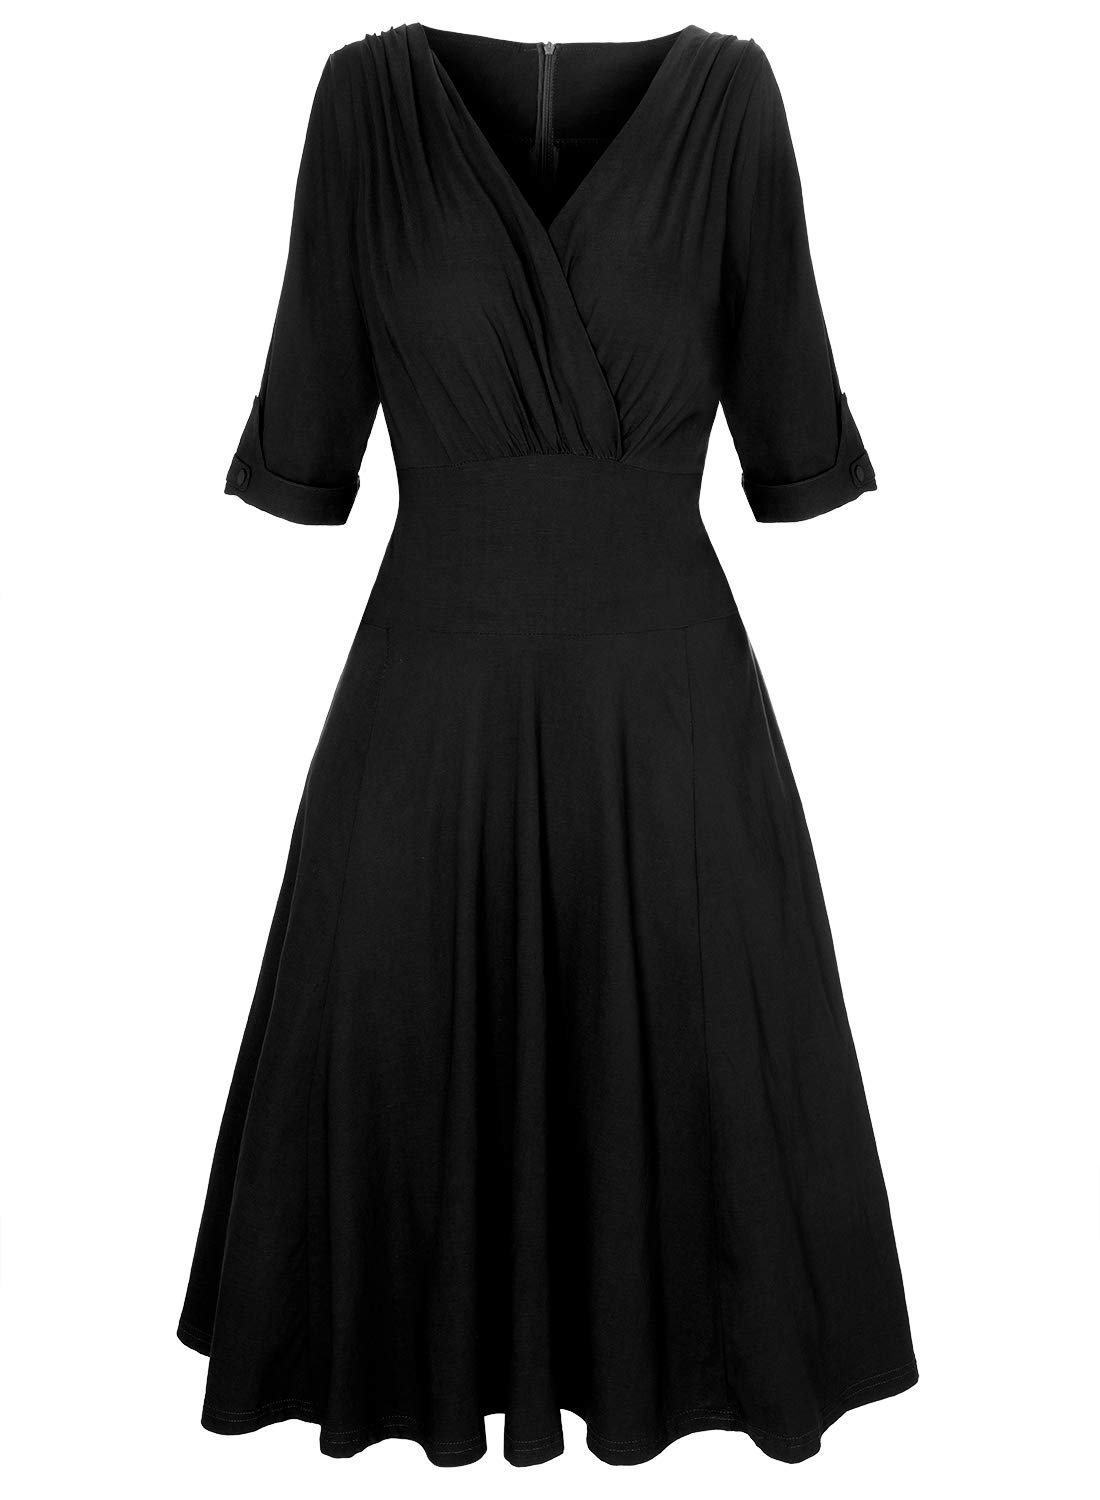 MERRYA Women's Plus Size 1950s V-Neck Sleeved Party Cocktail Swing Dress (20 Plus, Black)